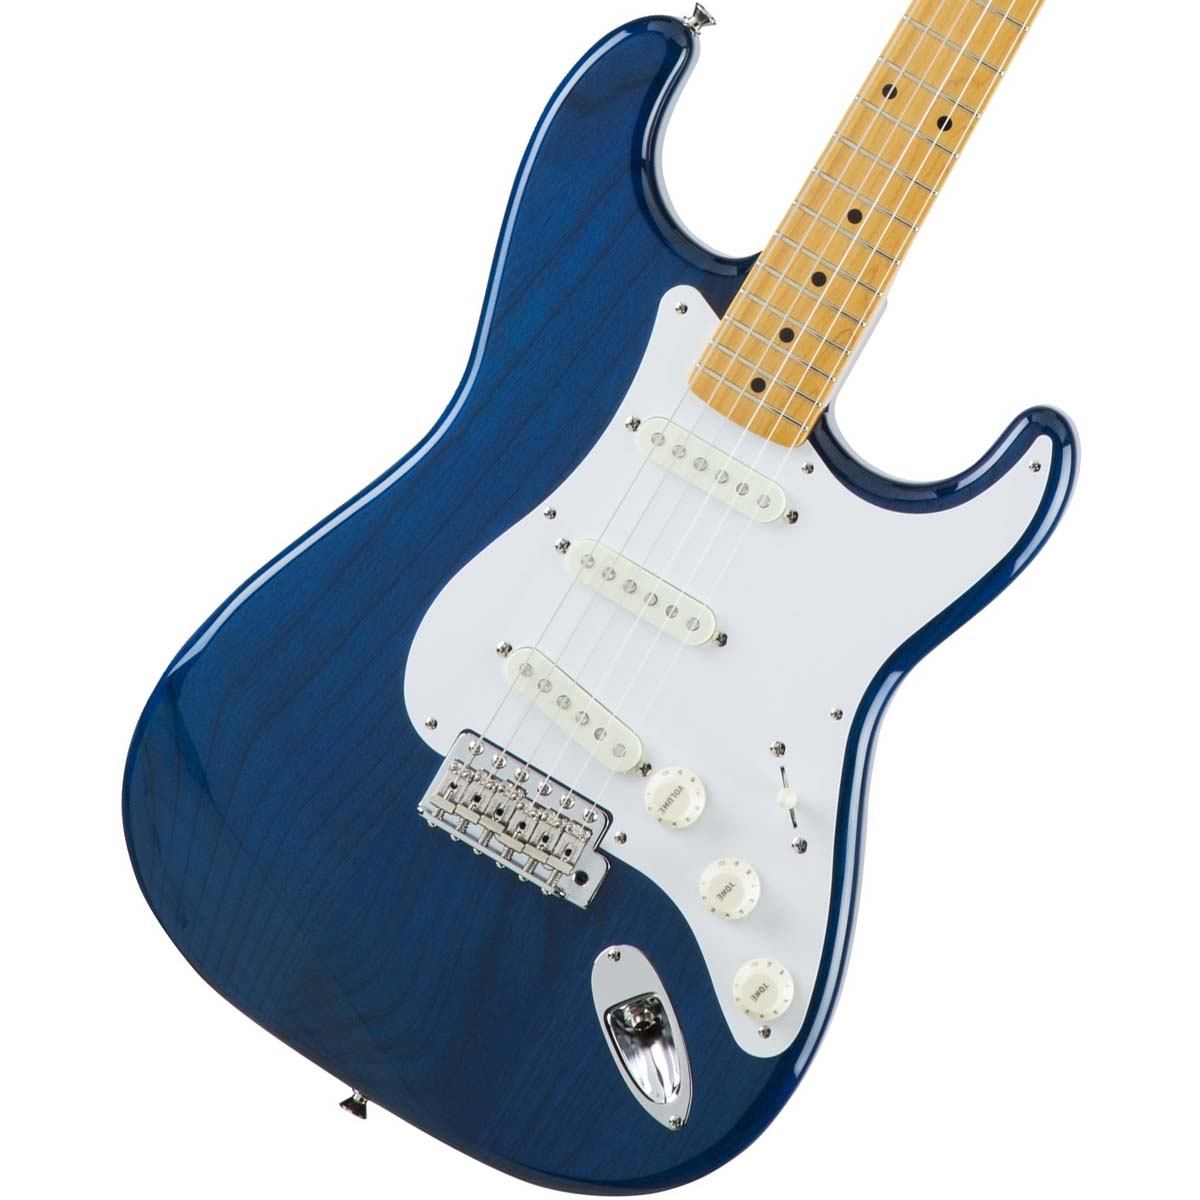 Fender / Made in Japan Traditional 58 Stratocaster Maple Fingerboard Sapphire Blue Trans《カスタムショップのお手入れ用品を進呈/+671038200》